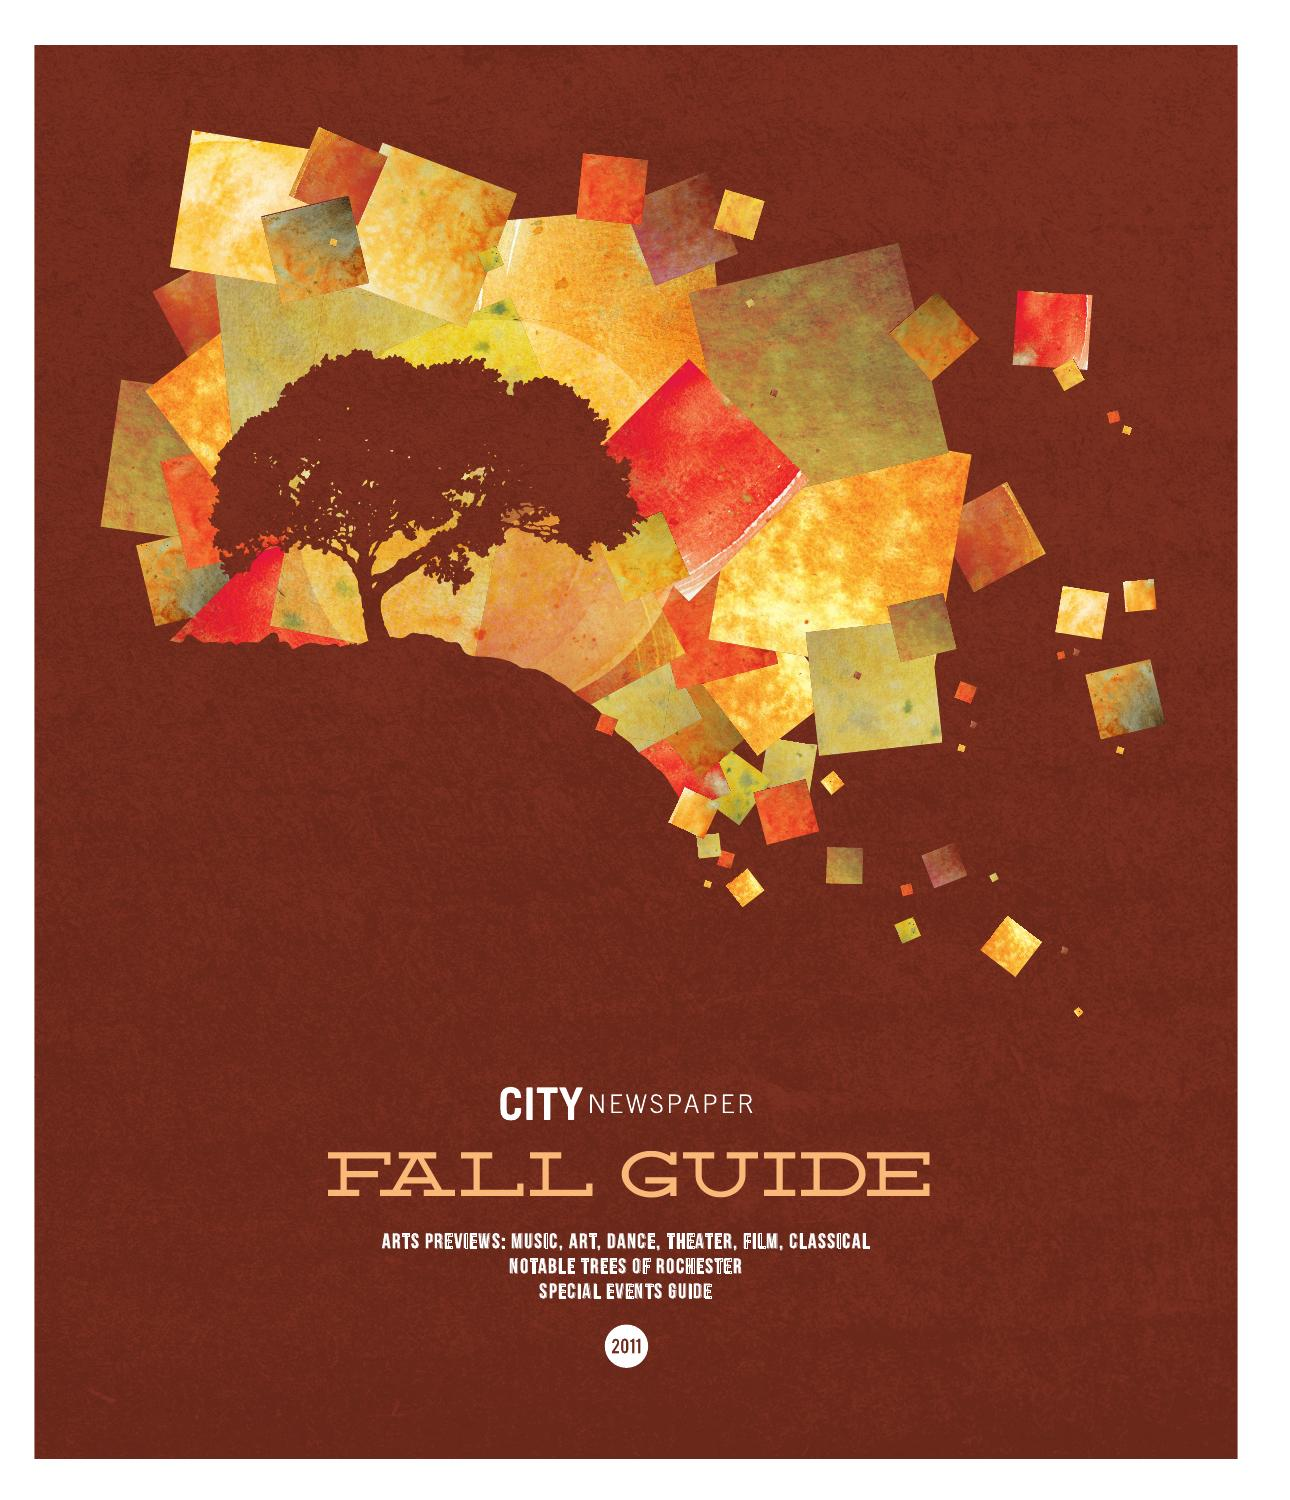 e47ed5031cfd Fall Guide 2011 by Rochester City Newspaper - issuu